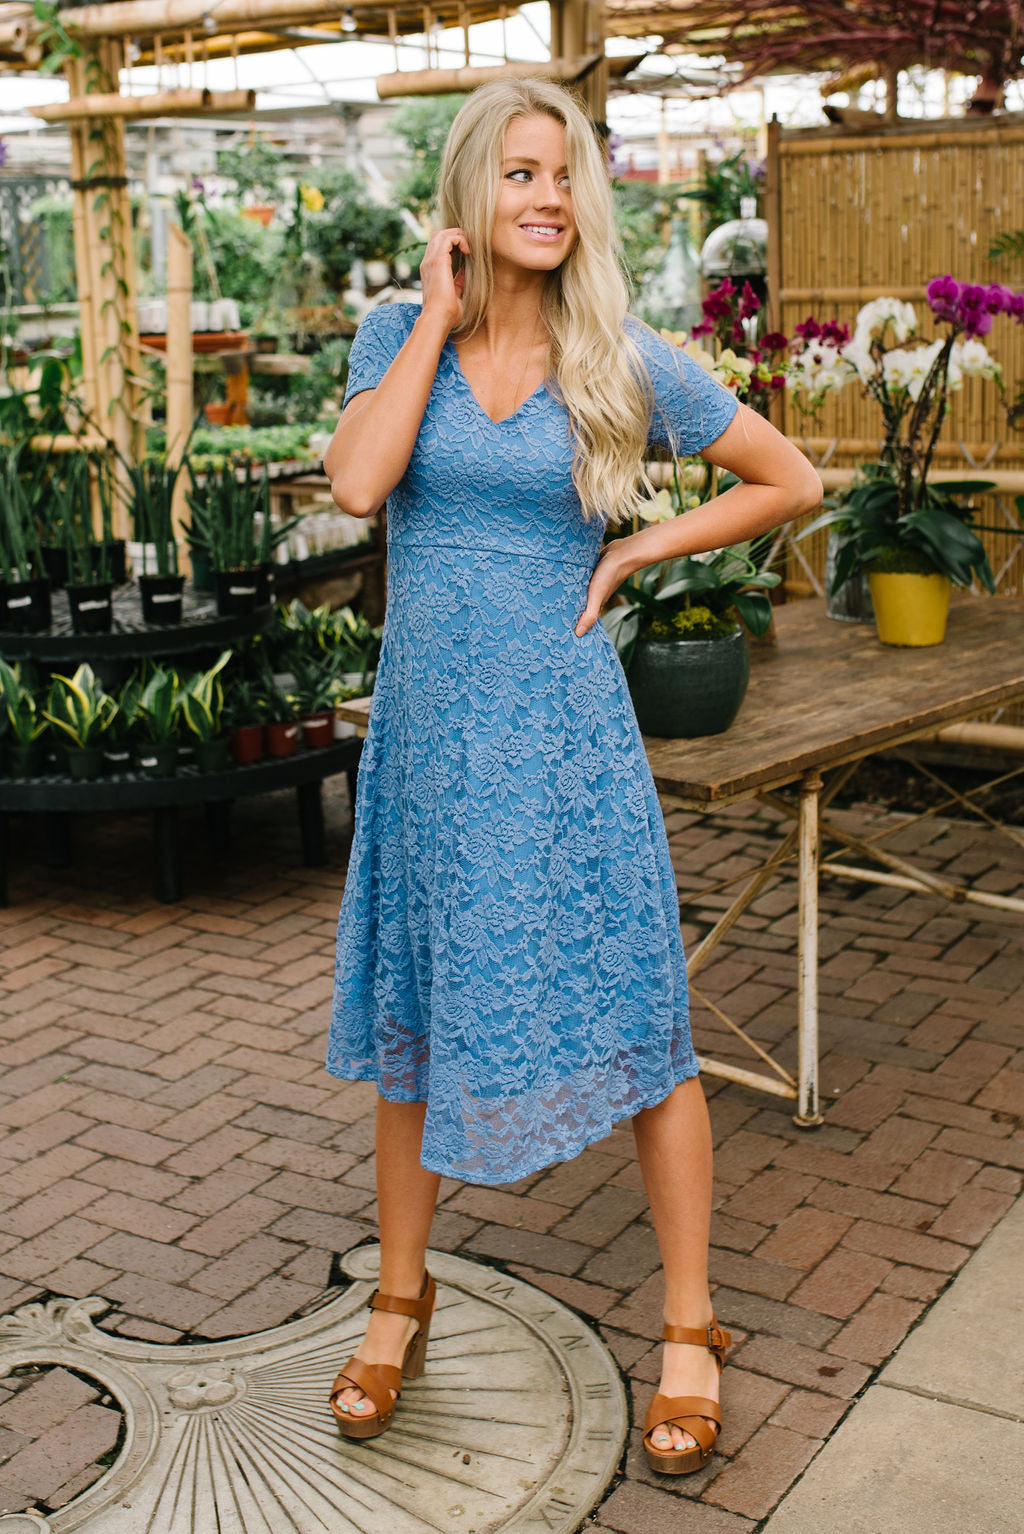 AMANDA MIDI LACE DRESS IN FORGET-ME-NOT BLUE